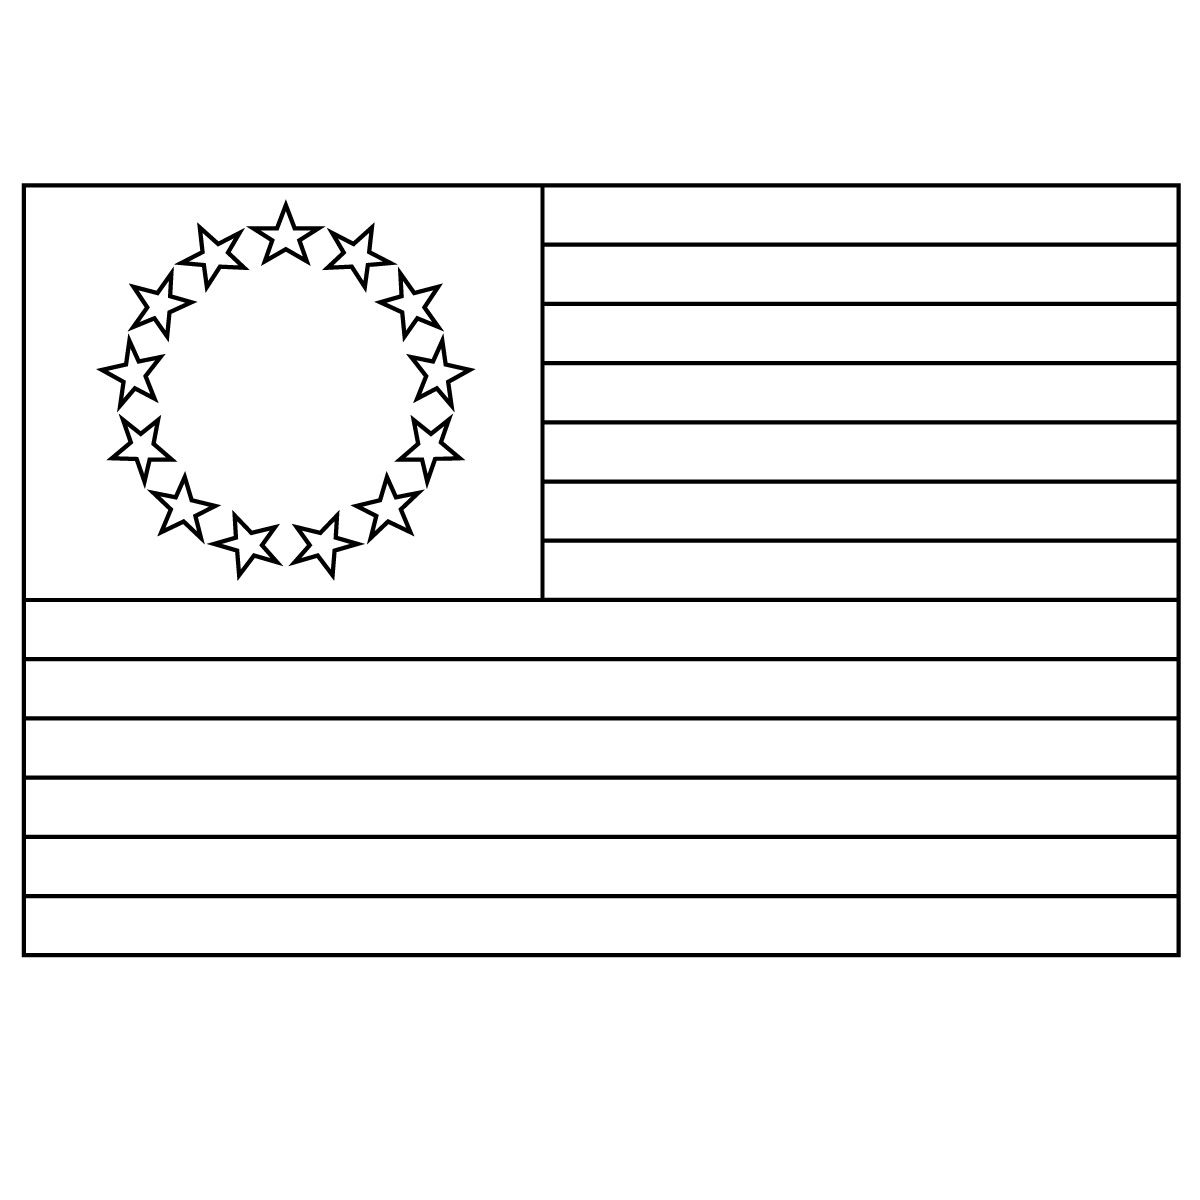 the american flag coloring page awesome american flag coloring sheet special picture american flag coloring page the